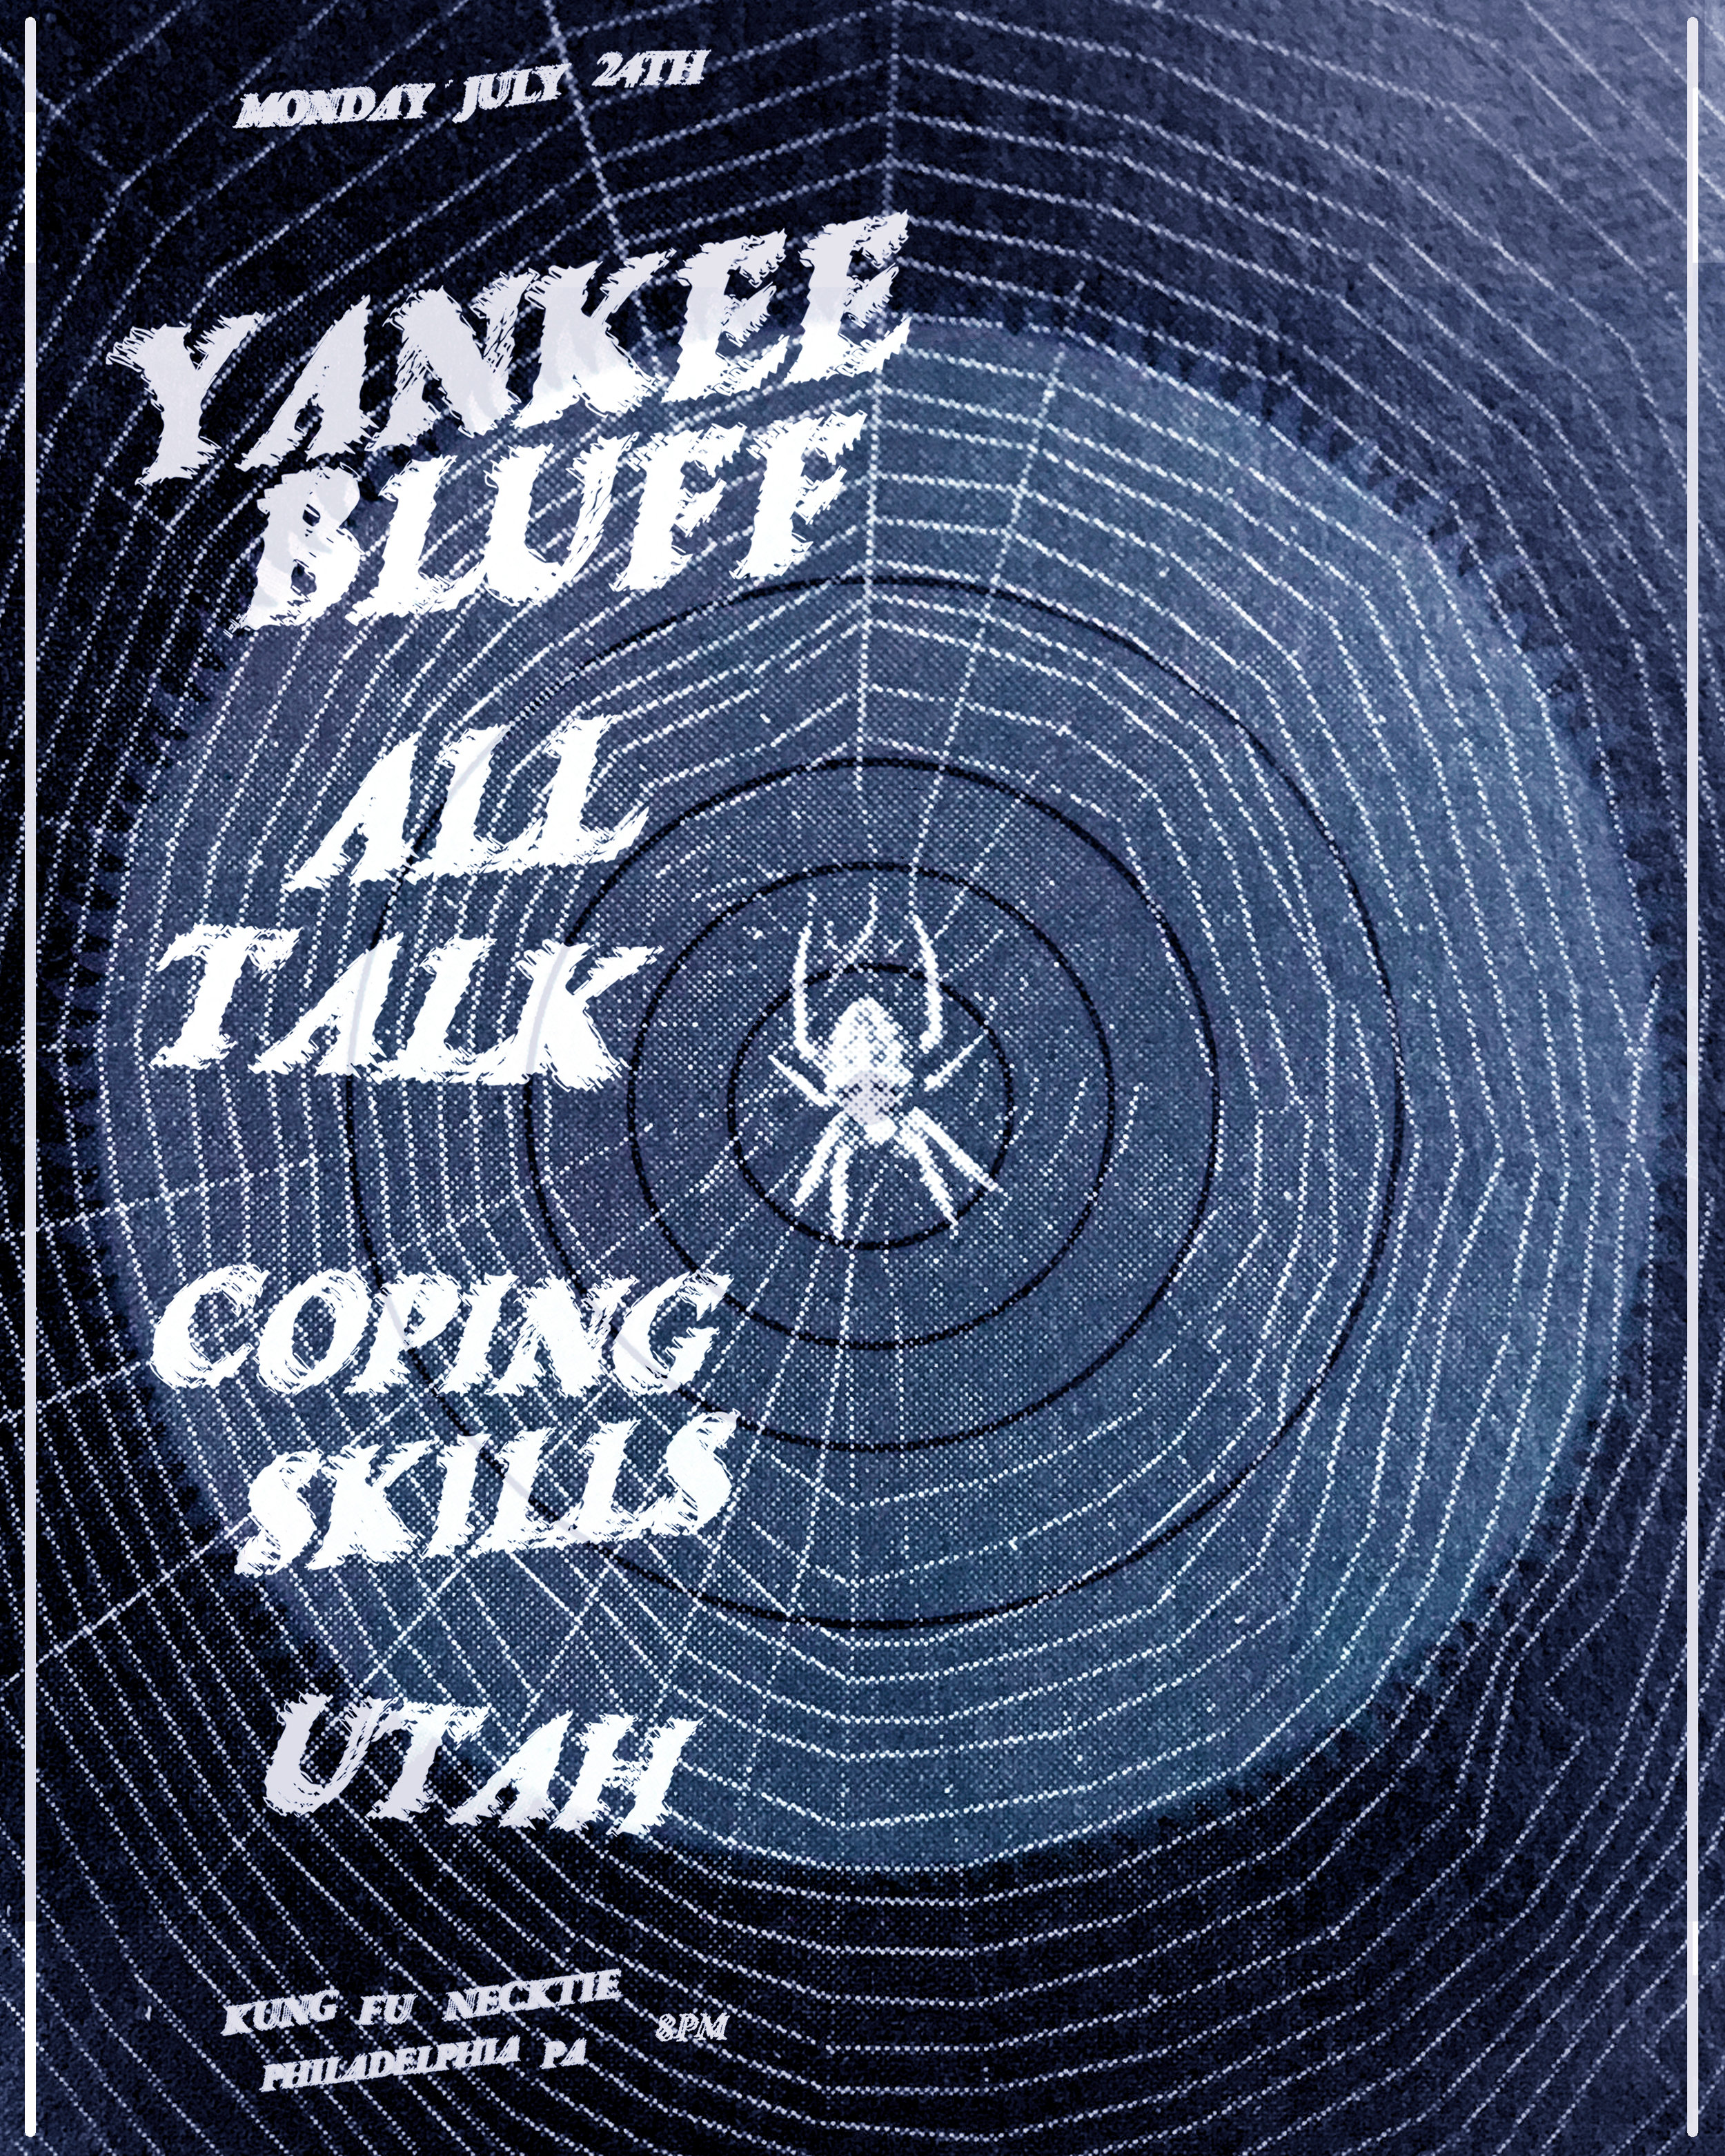 Flyer-YankeeBluff724-Blues copy.jpg